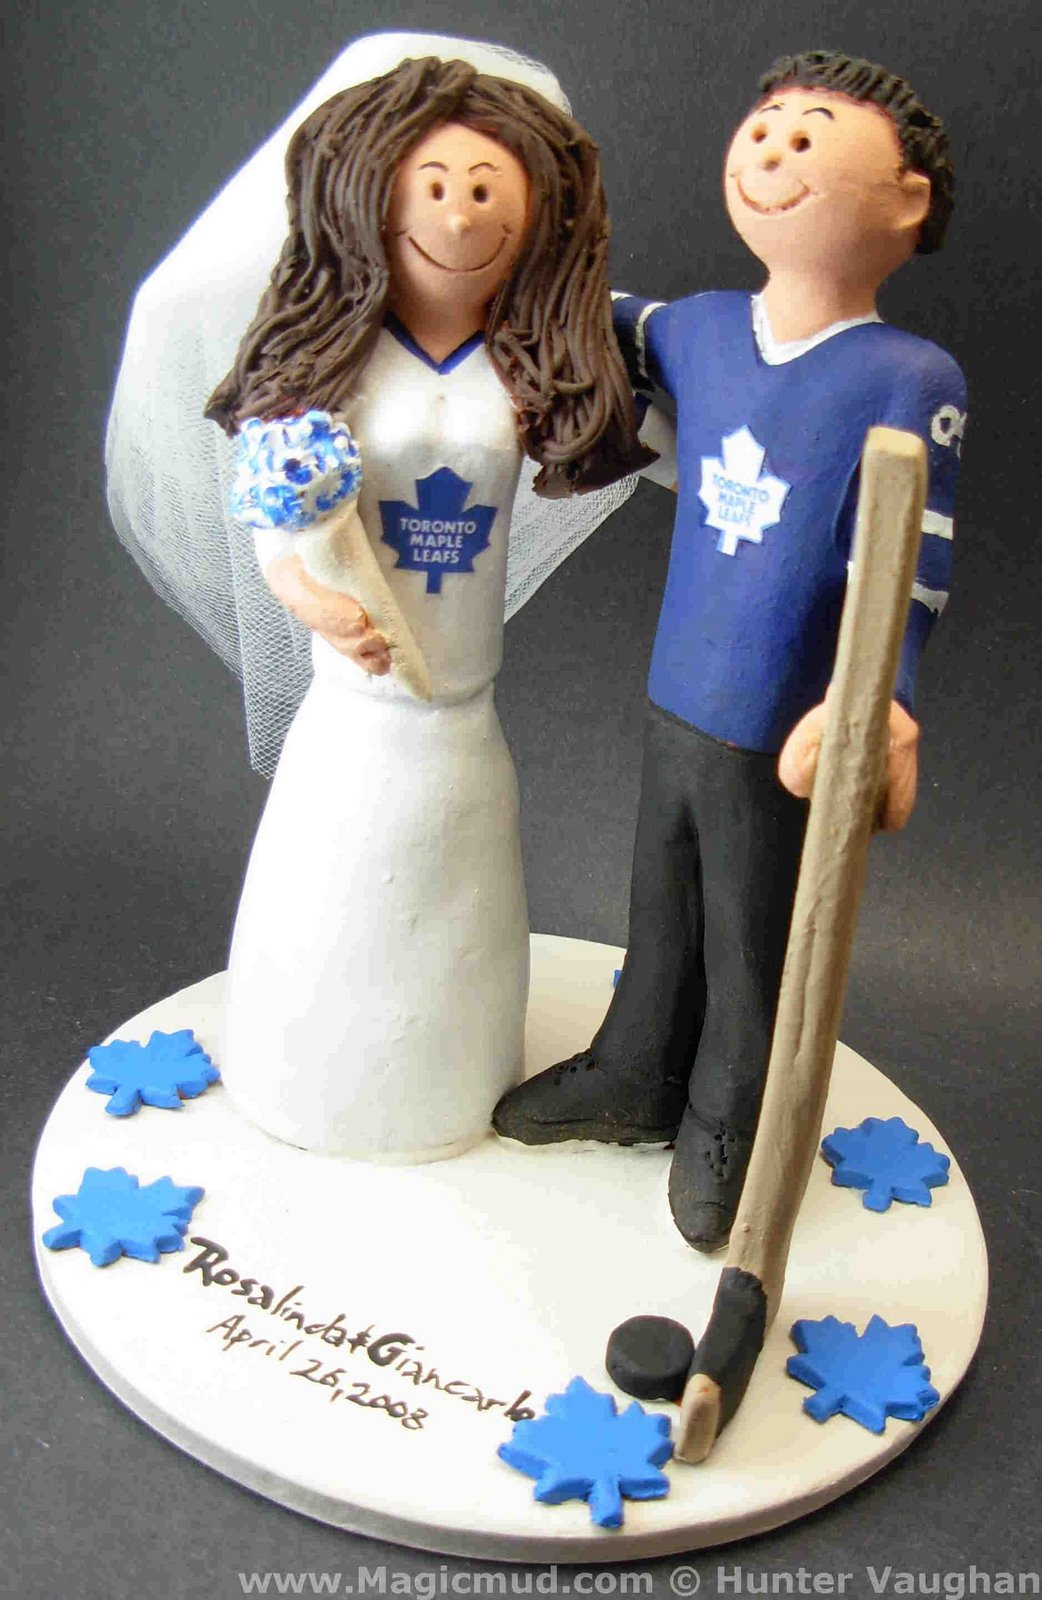 Wedding Cake Topper Of The DayToronto Maple Leafs Cake Topper